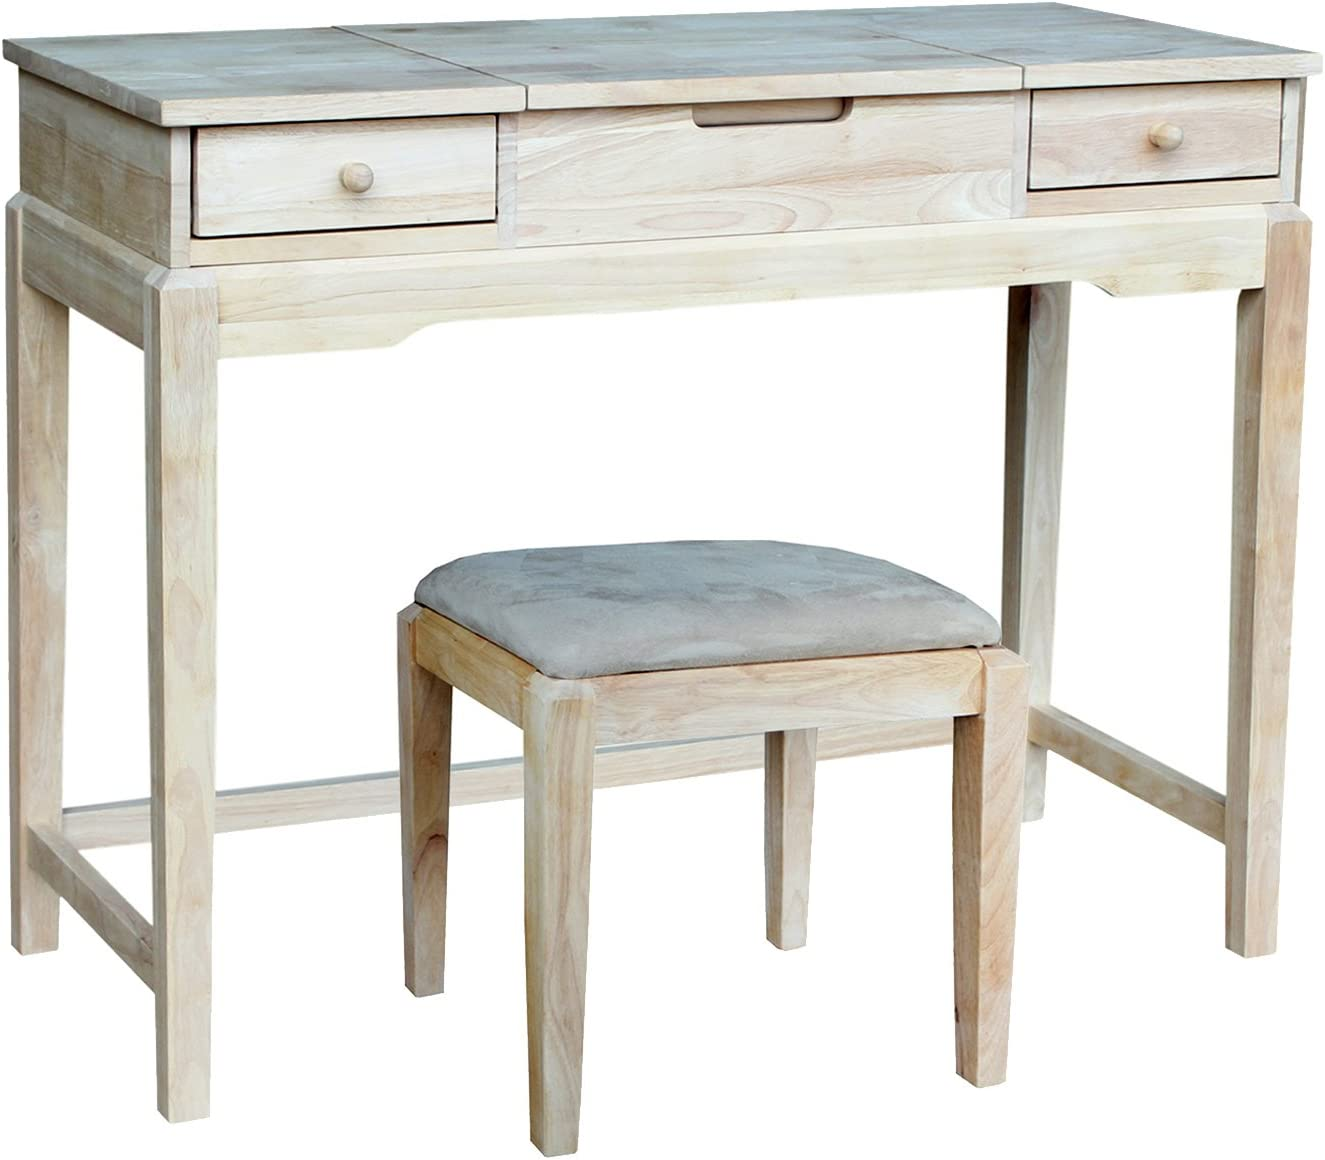 International Concepts Vanity Table with Bench, Unfinished